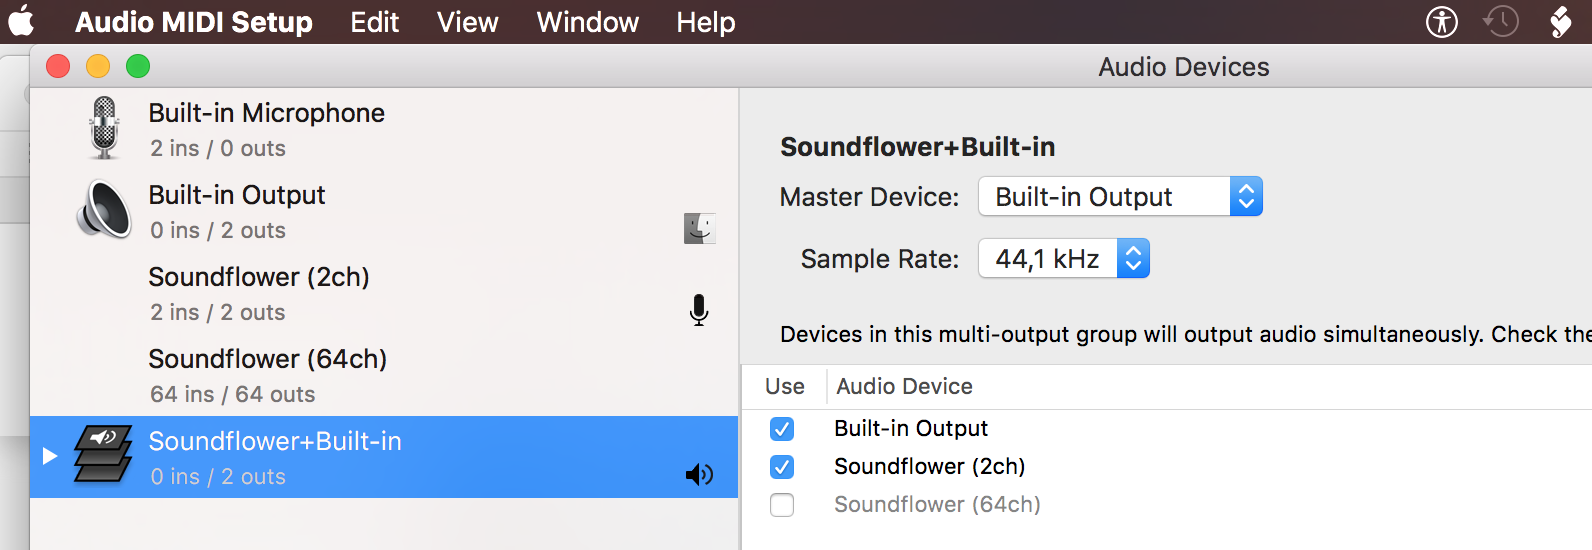 Recording sound audio from computer - Apple Community